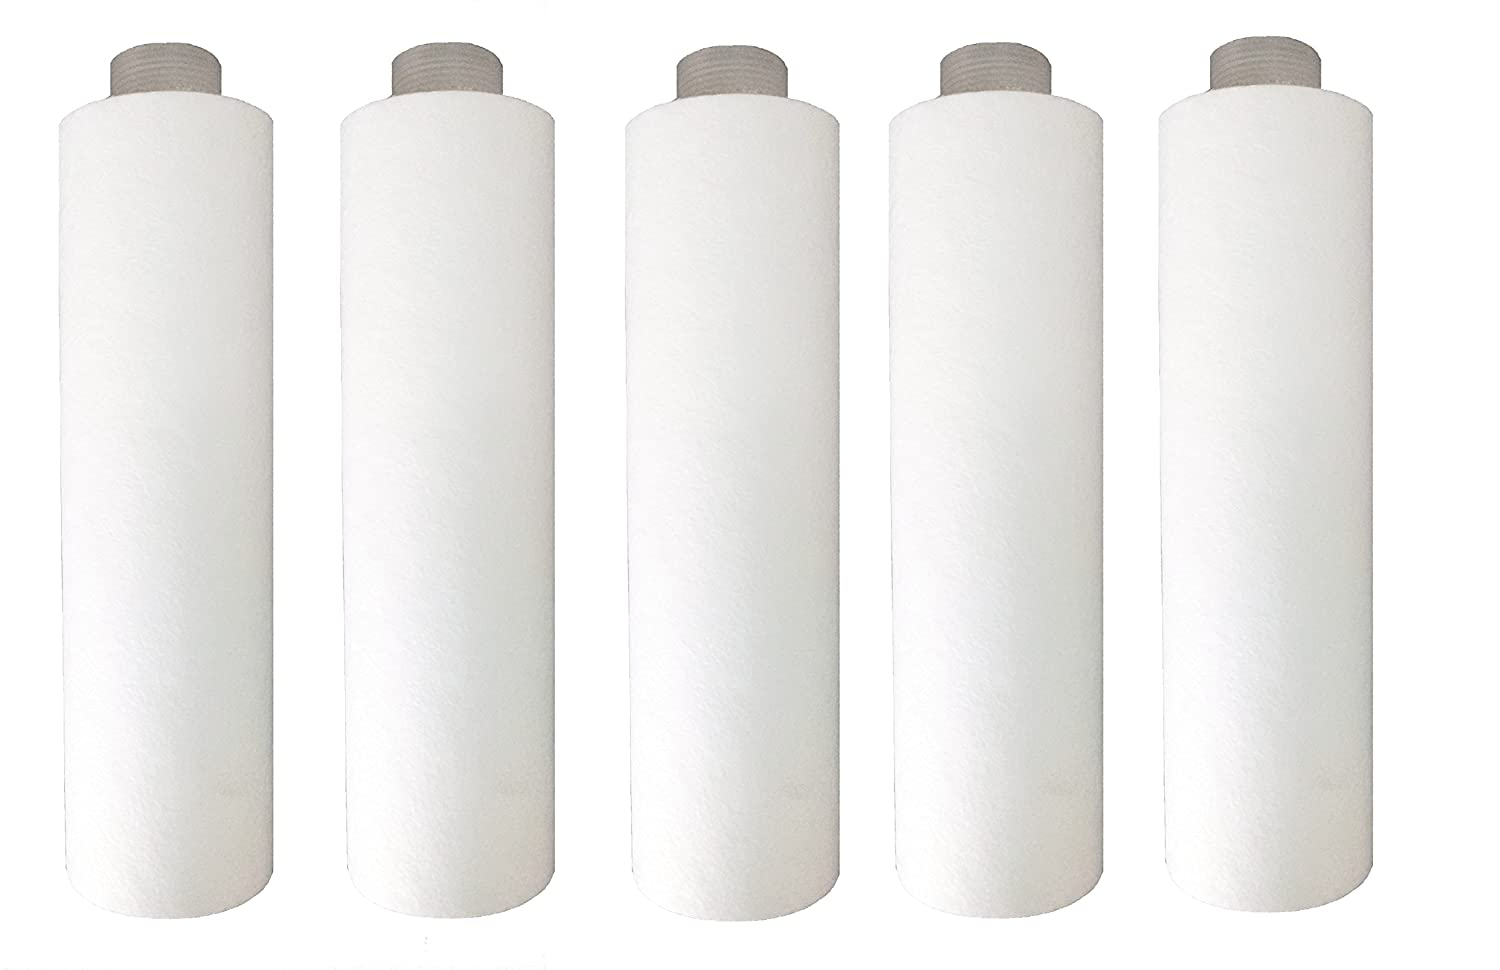 Aquadyne Water Filters Pre Filter Candle White Pack Of 5 Amazon Nano Cartridge Air 10 03 U Mikron Home Kitchen